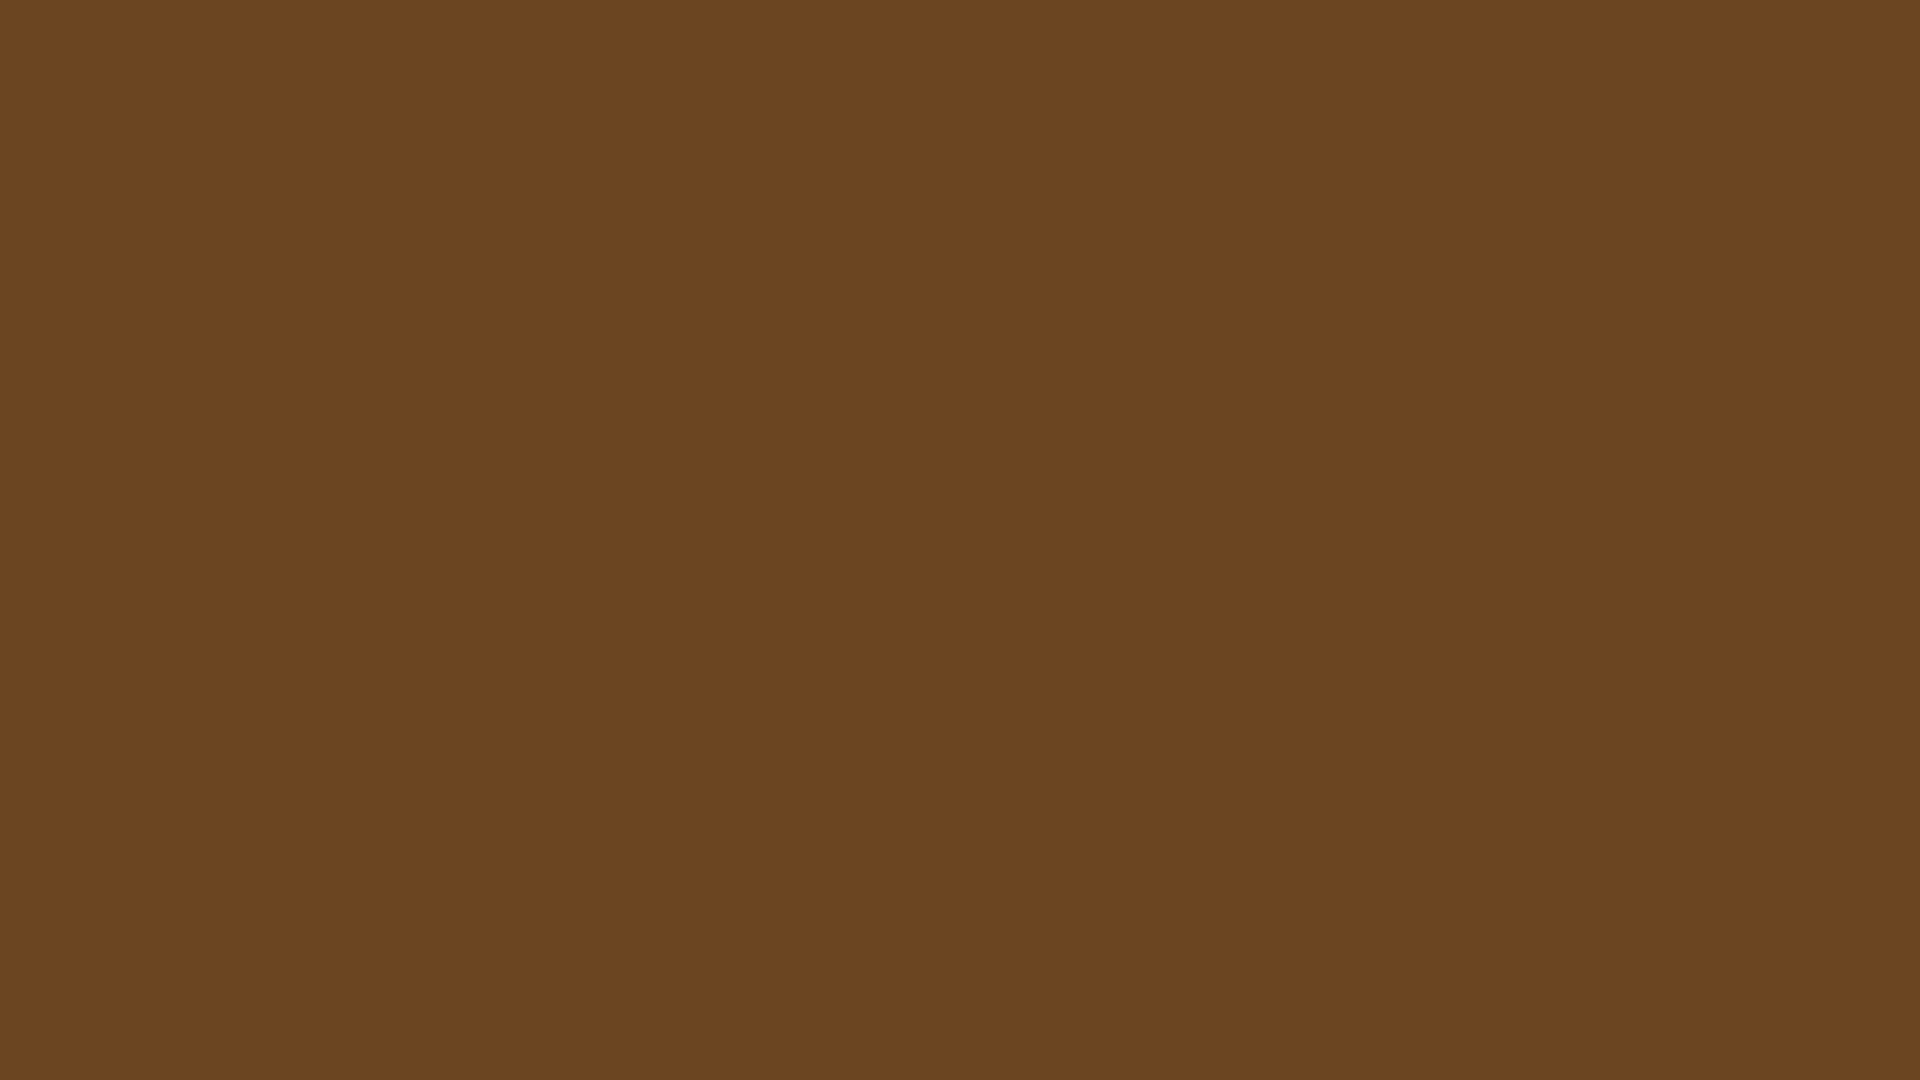 1920x1080 Brown-nose Solid Color Background